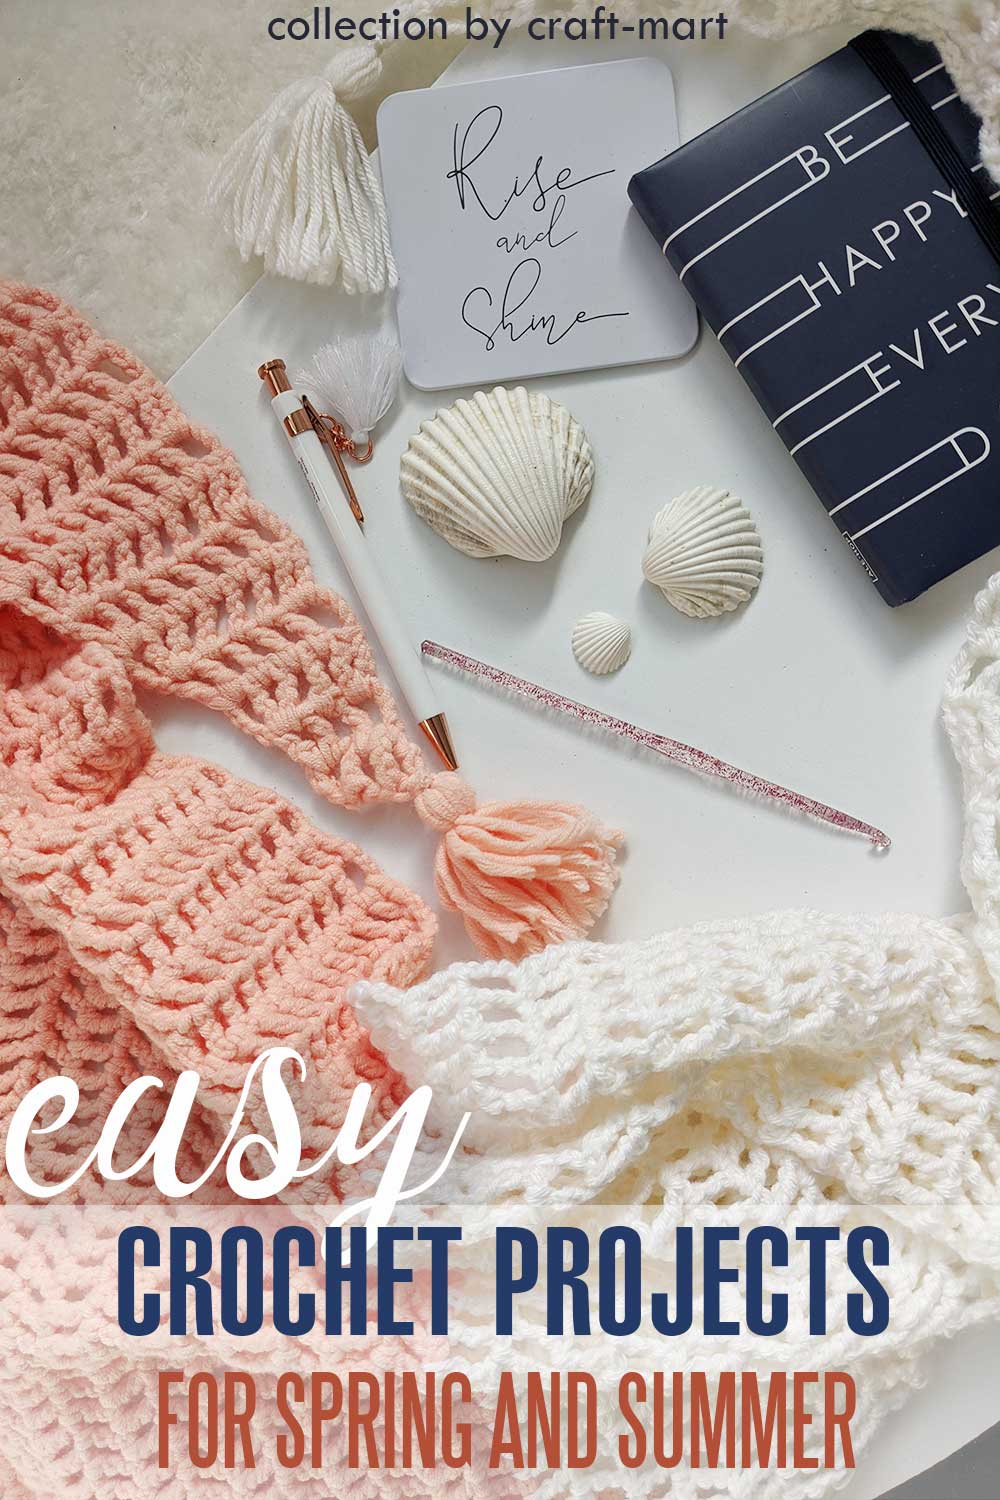 Easy Crochet Project for Spring and Summer